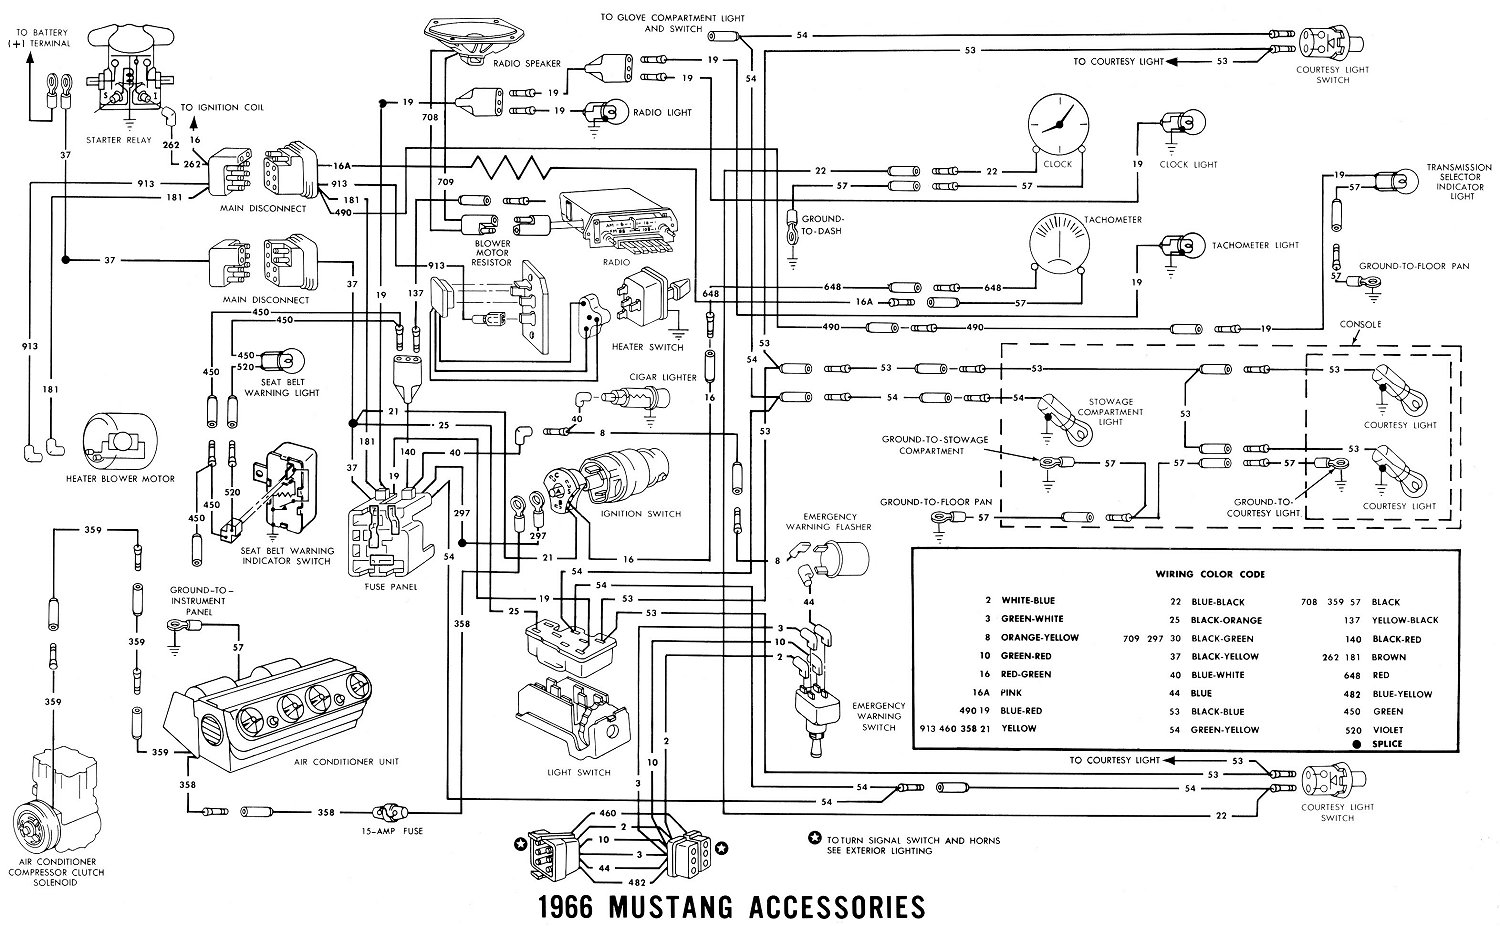 1966 Ford Mustang Accessories Wiring Diagram 2012 mustang wiring diagram 2010 flex wiring diagram \u2022 wiring ford escape wiring harness diagram at readyjetset.co